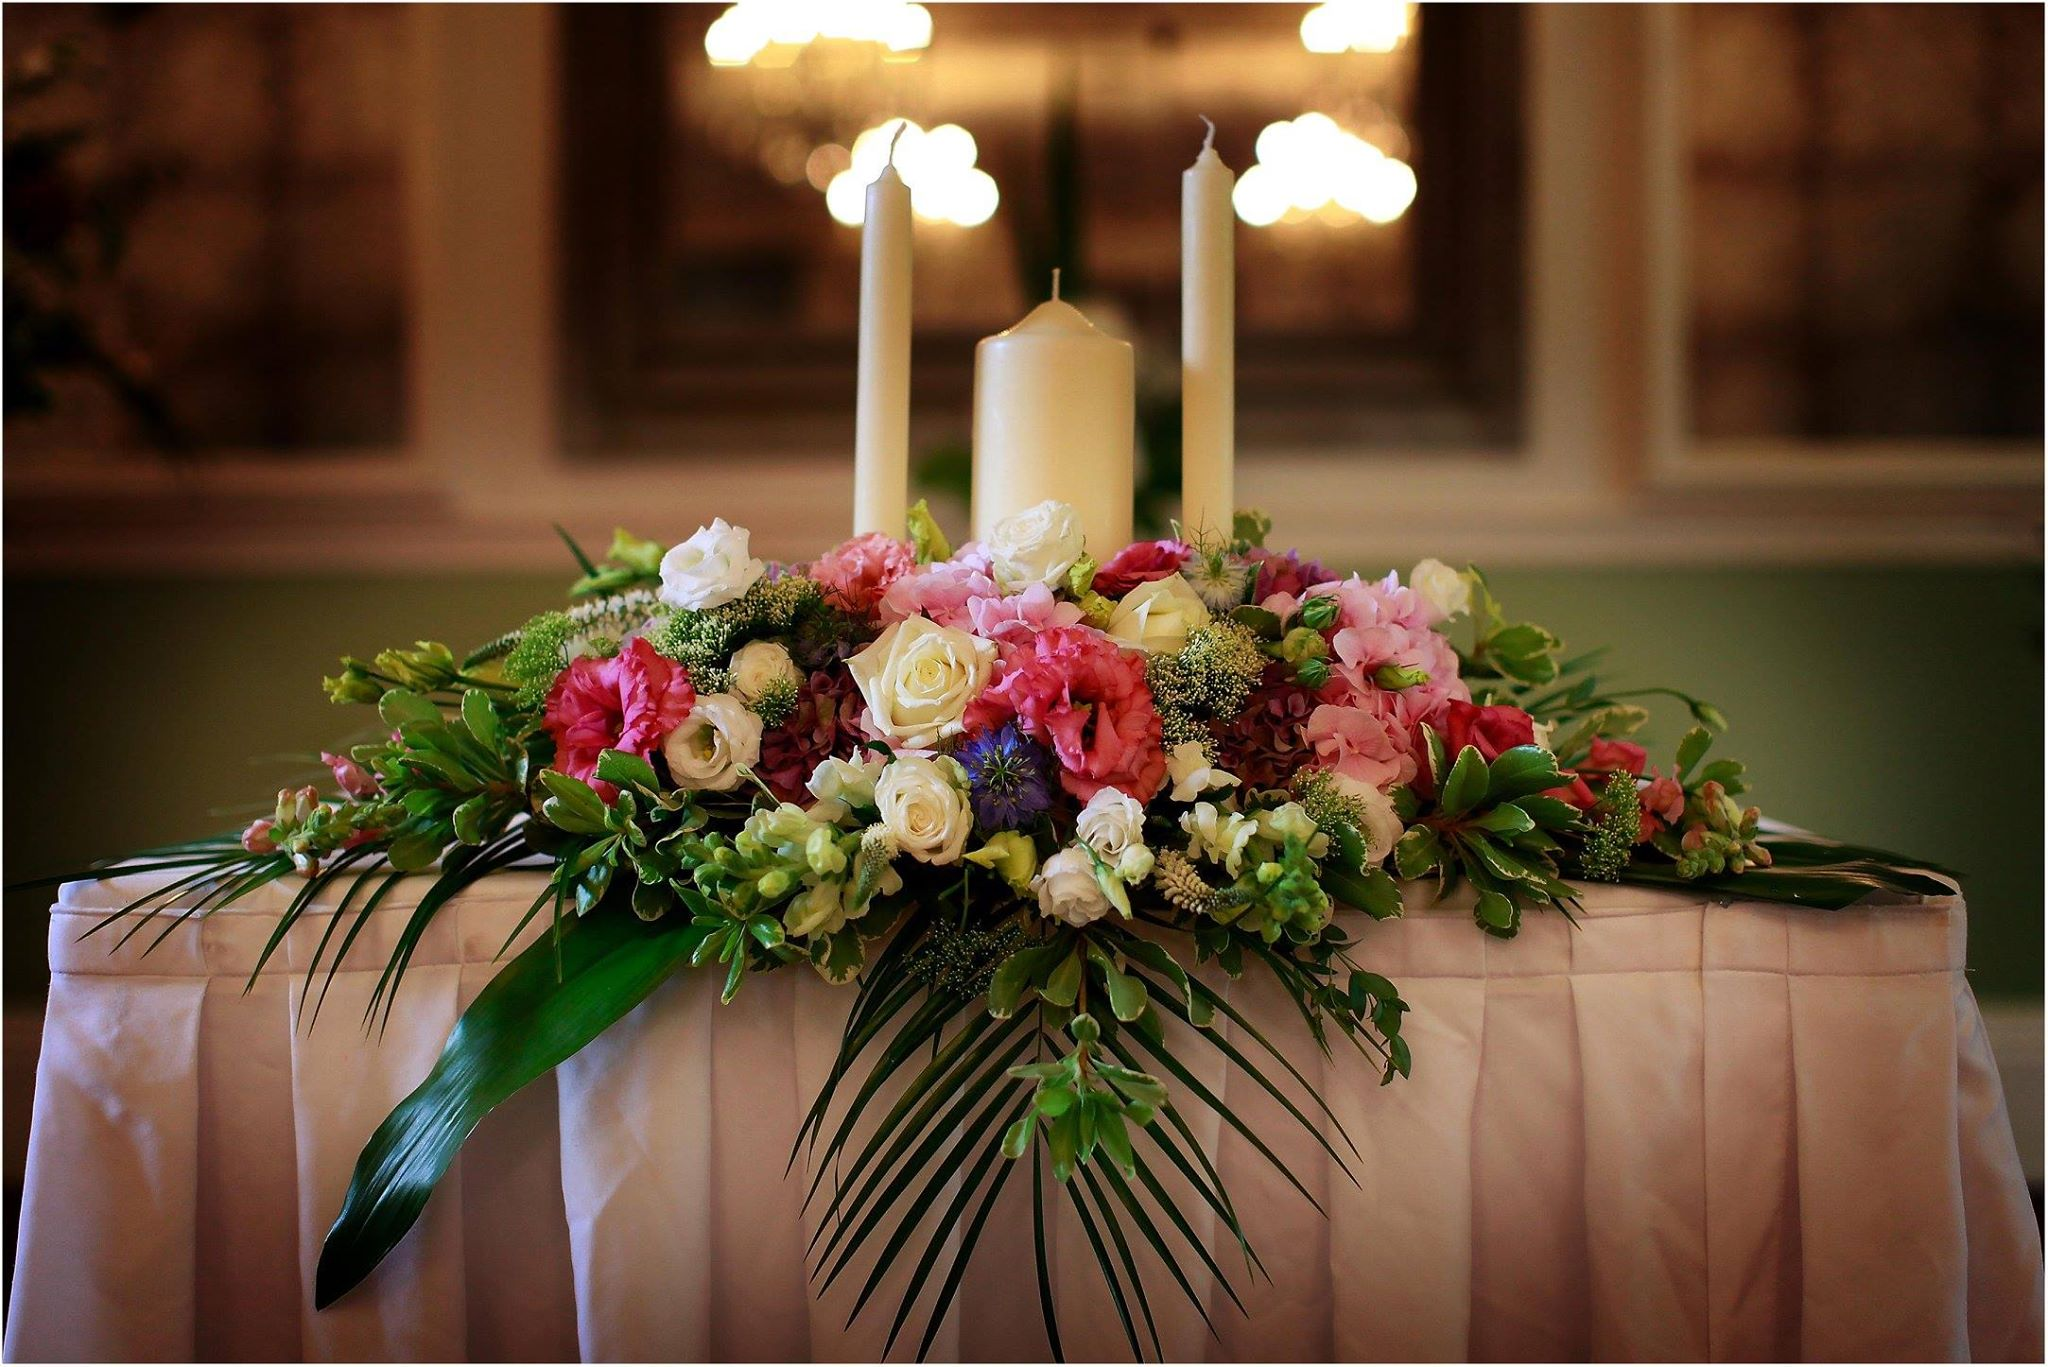 Finesse weddings wedding venue and ceremony decor and floral service gallery junglespirit Images